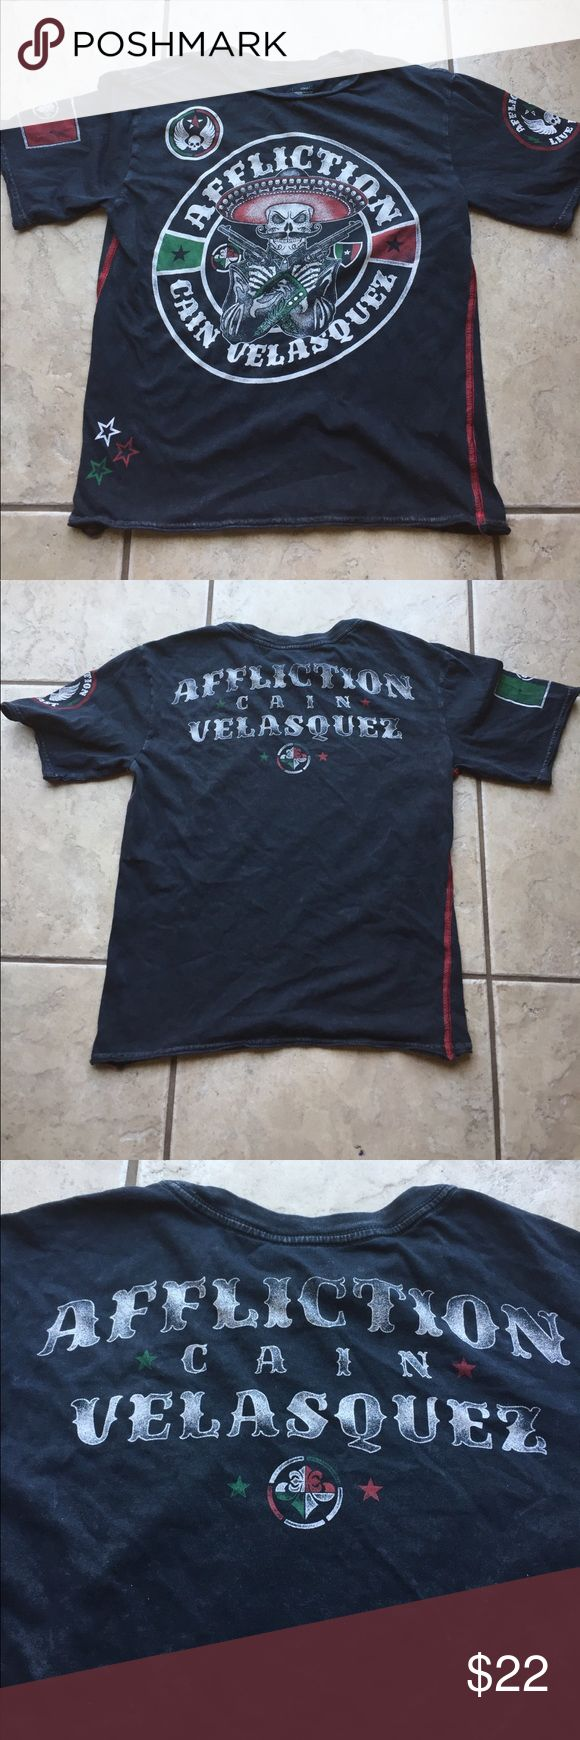 Affliction shirt (youth) This is in excellent used condition! Perfect for back to school! Cain Velasquez affliction. Has a distressed/faded look which was purchased like that. No holes/stains. Always hung to dry. Size Small for boys but fits a little smaller. This goes perfect with the BKE jeans in my closet 😍 Smoke/pet free home. Affliction Shirts & Tops Tees - Short Sleeve